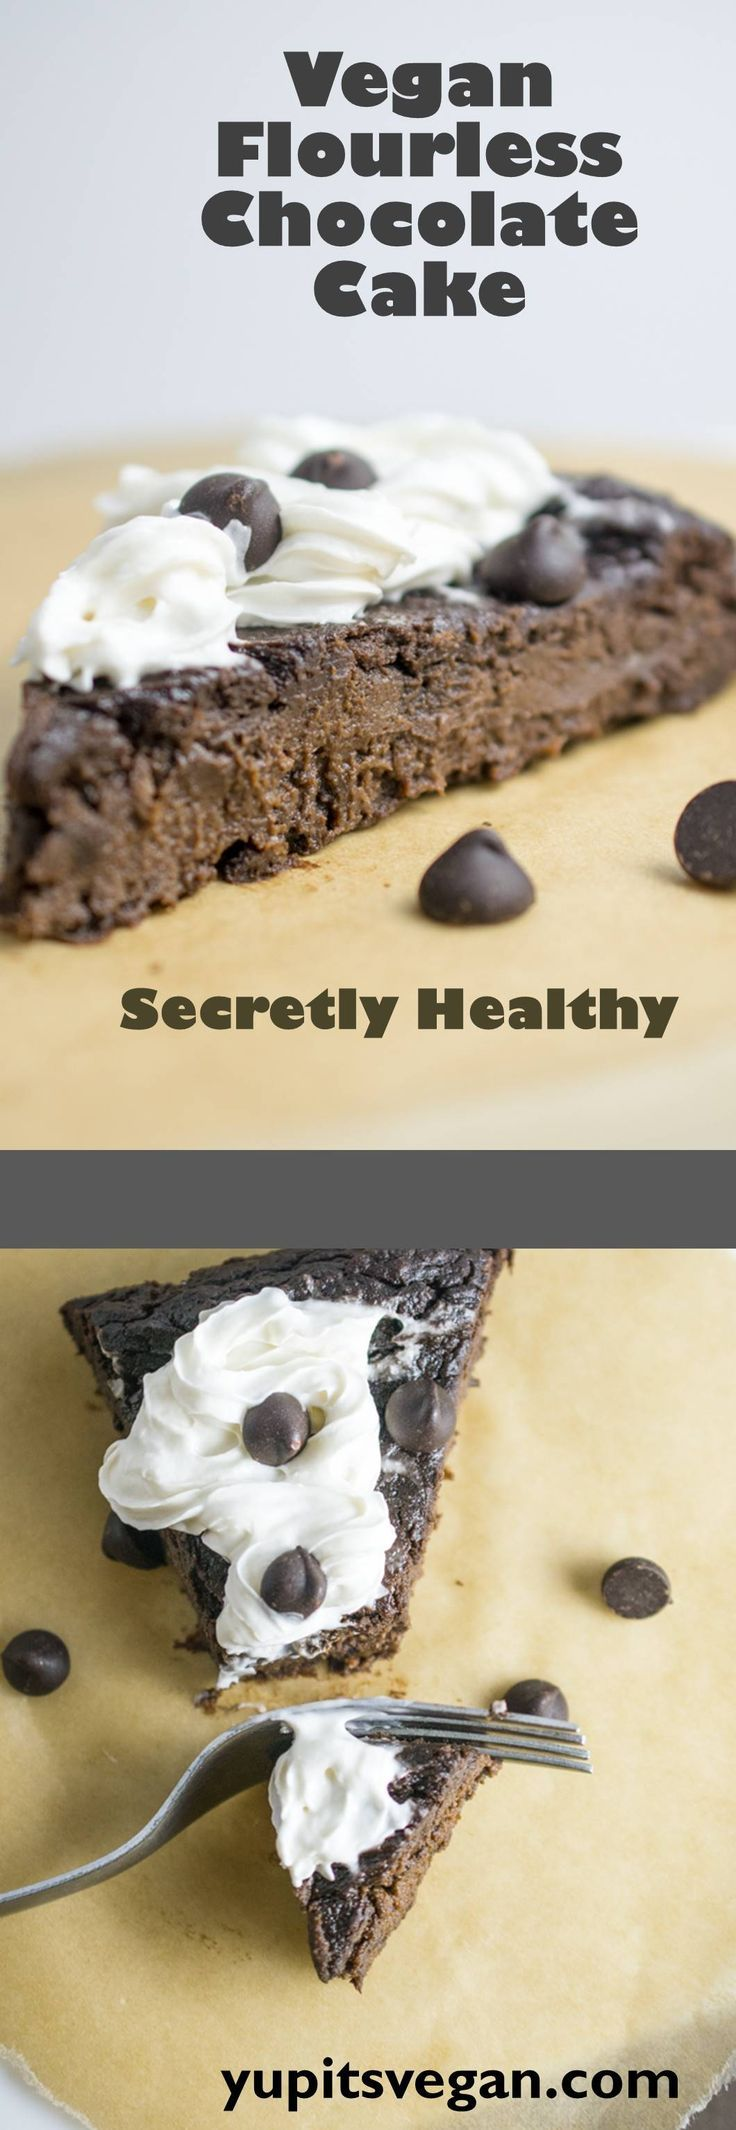 69 best Vegan Desserts: Chocolate Mousse Cakes, Etc. images on ...